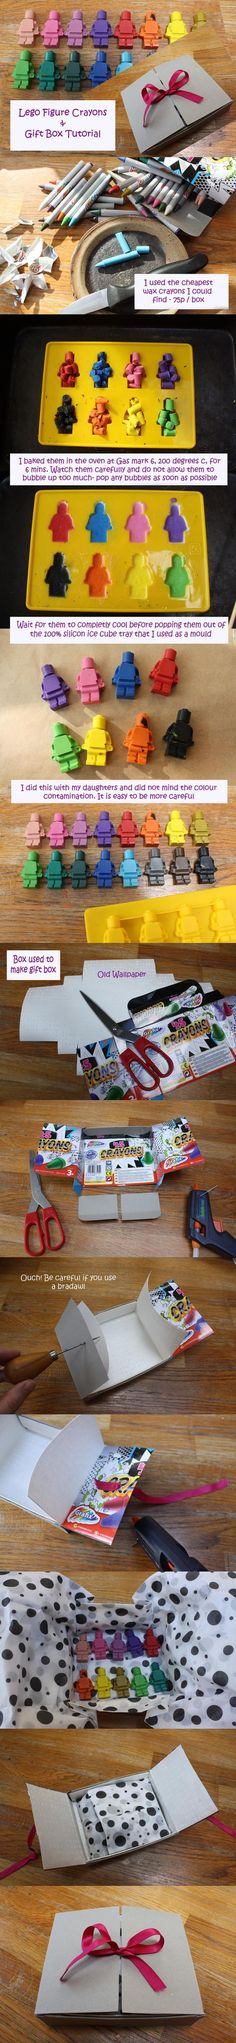 Make It: Lego Man Crayons - Tutorial #kids DIY, Do It Yourself, #DIY